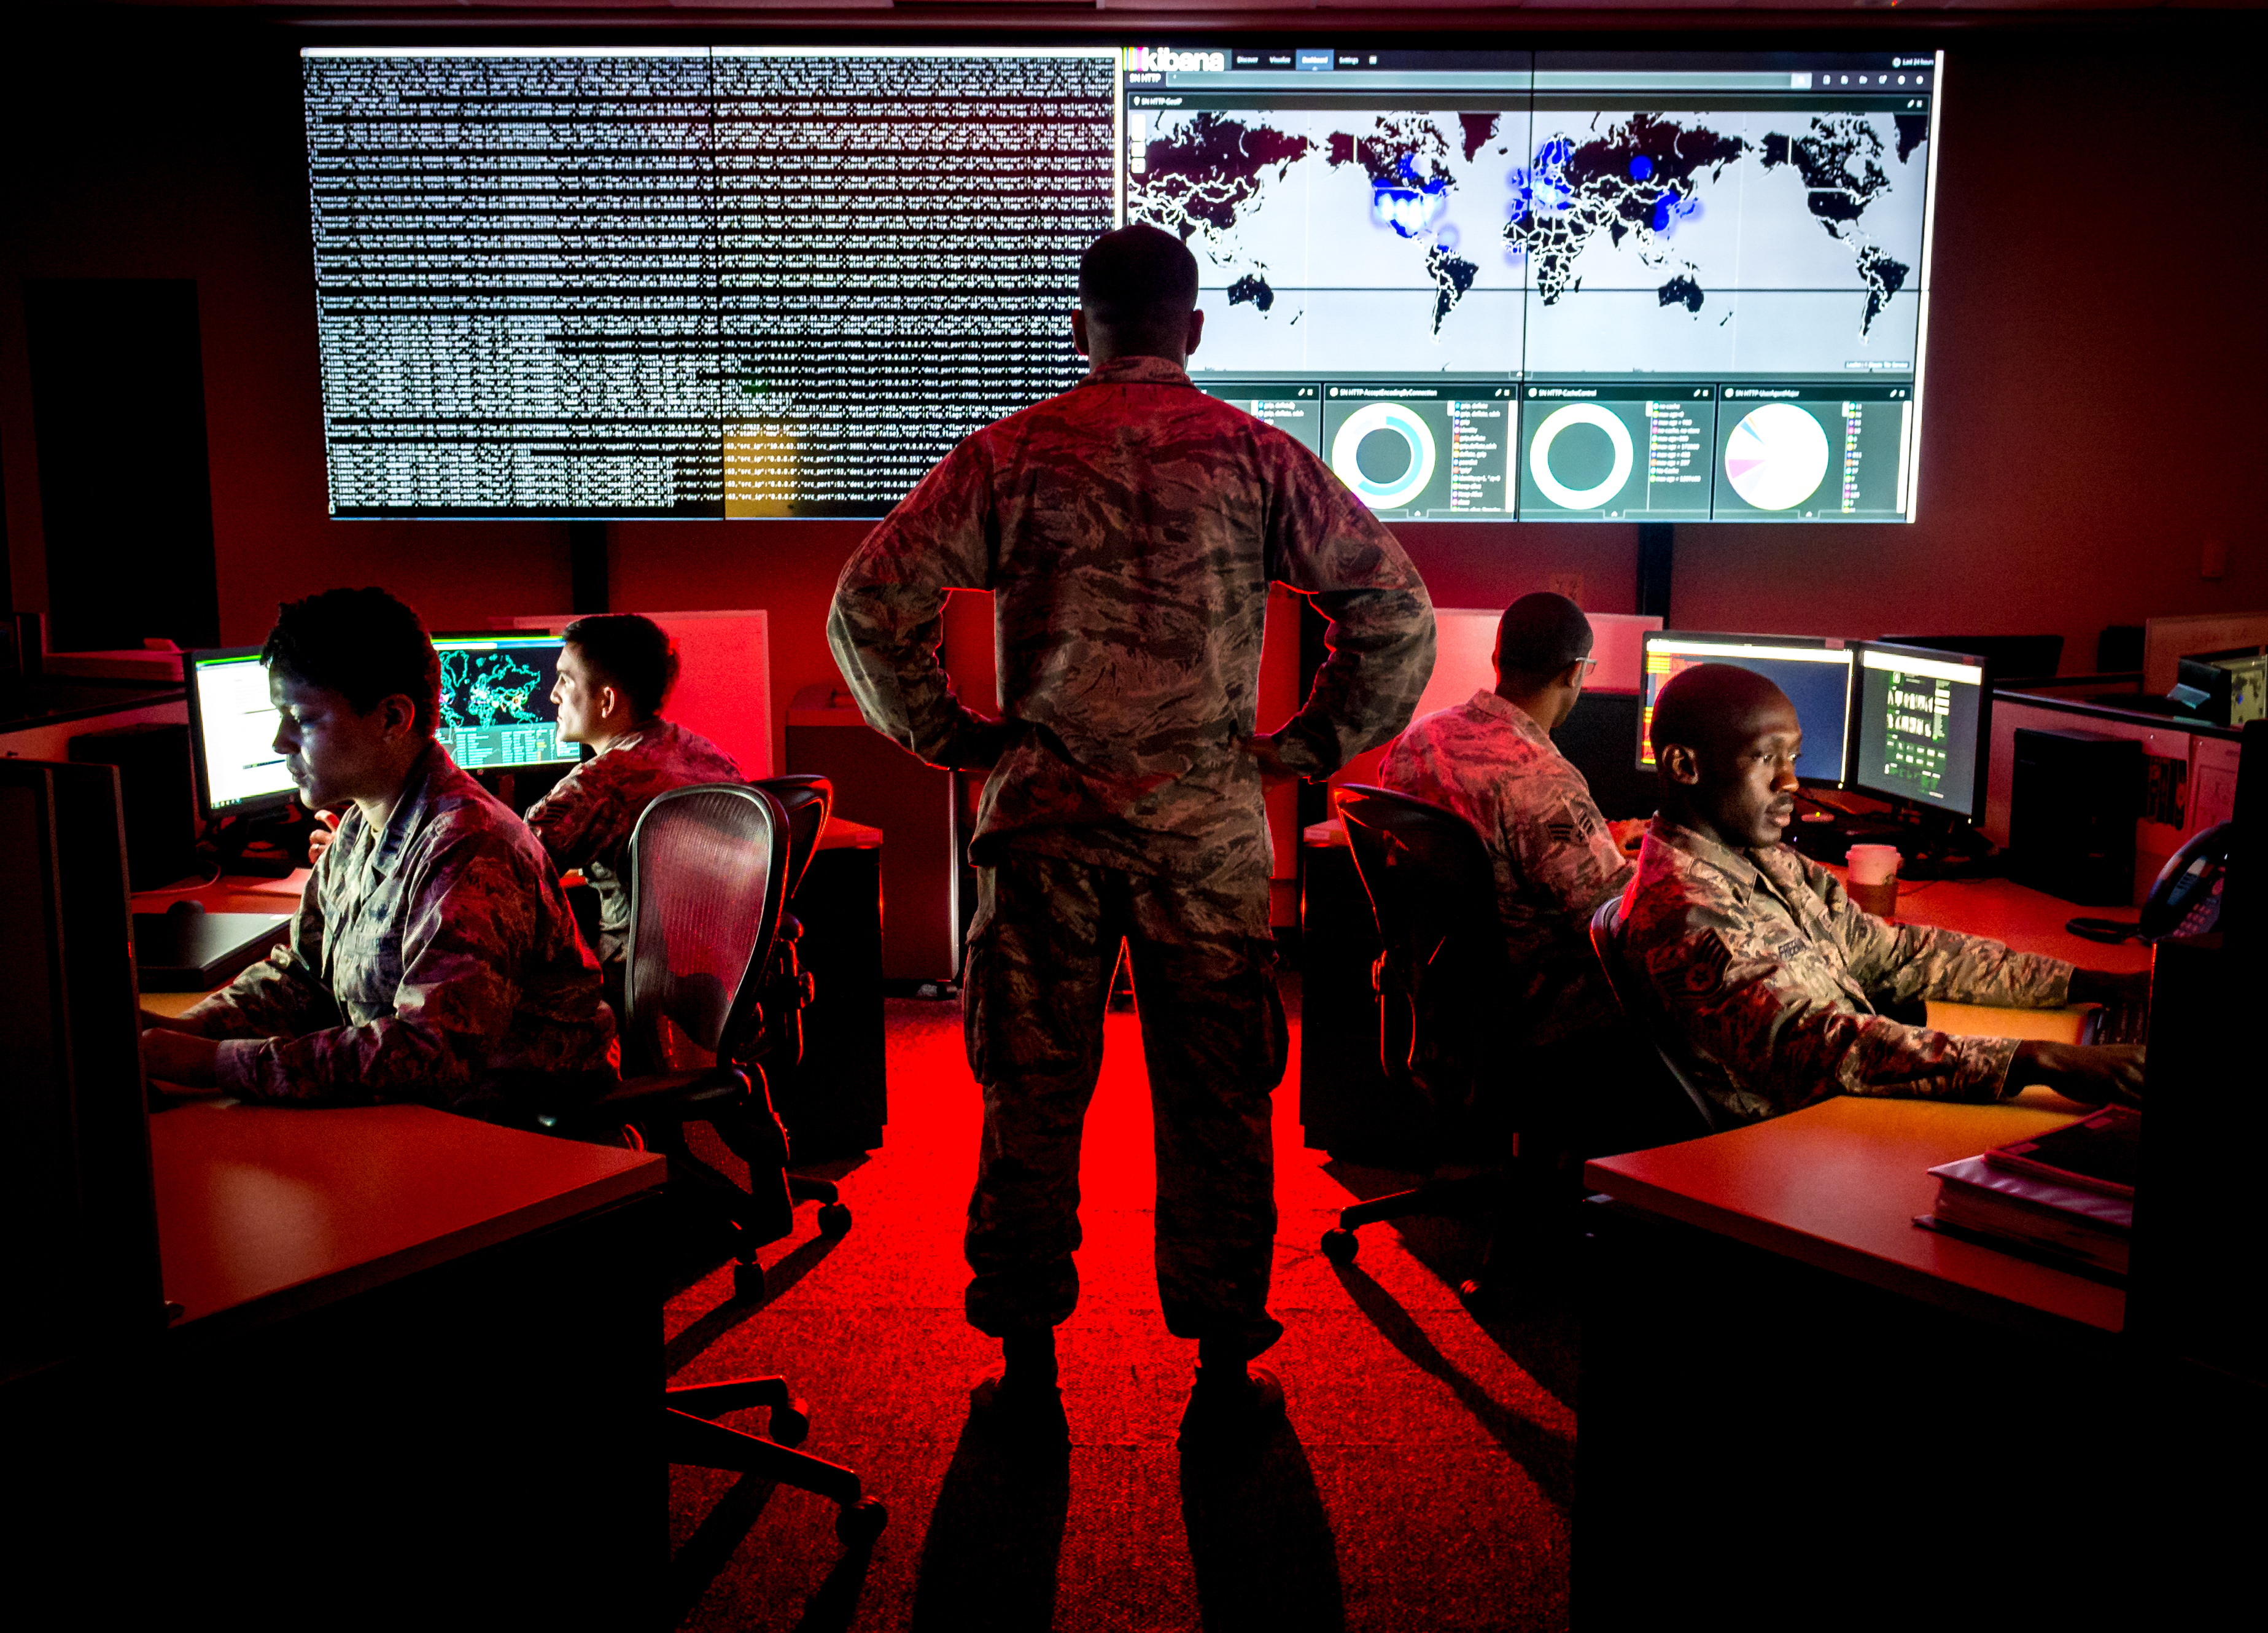 A bipartisan congressional panel is recommending that the Pentagon 'identify, replace, and retire costly and ineffective legacy weapons platforms,' and prioritize artificial intelligence, supply chain resiliency and cyberwarfare to compete with China and Russia. (U.S. Air Force photo by J.M. Eddins Jr.)